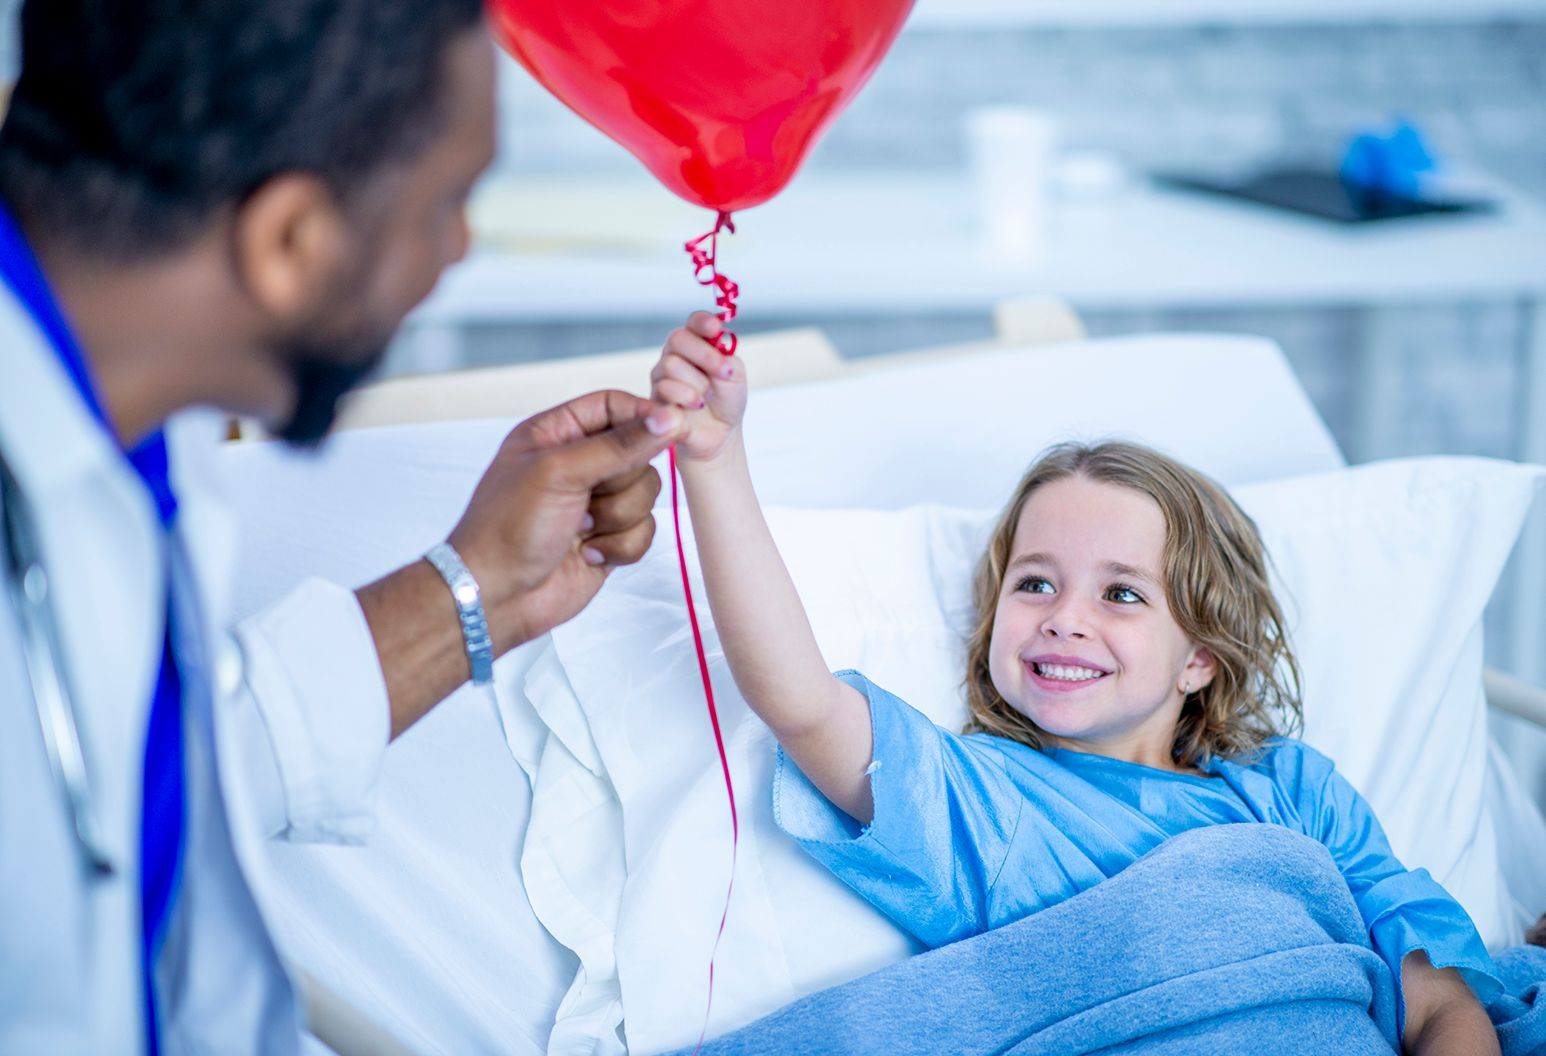 A young girl smiles adorably while taking a balloon from her doctor's hand. The doctor is standing by her bed and wearing professional clothing.